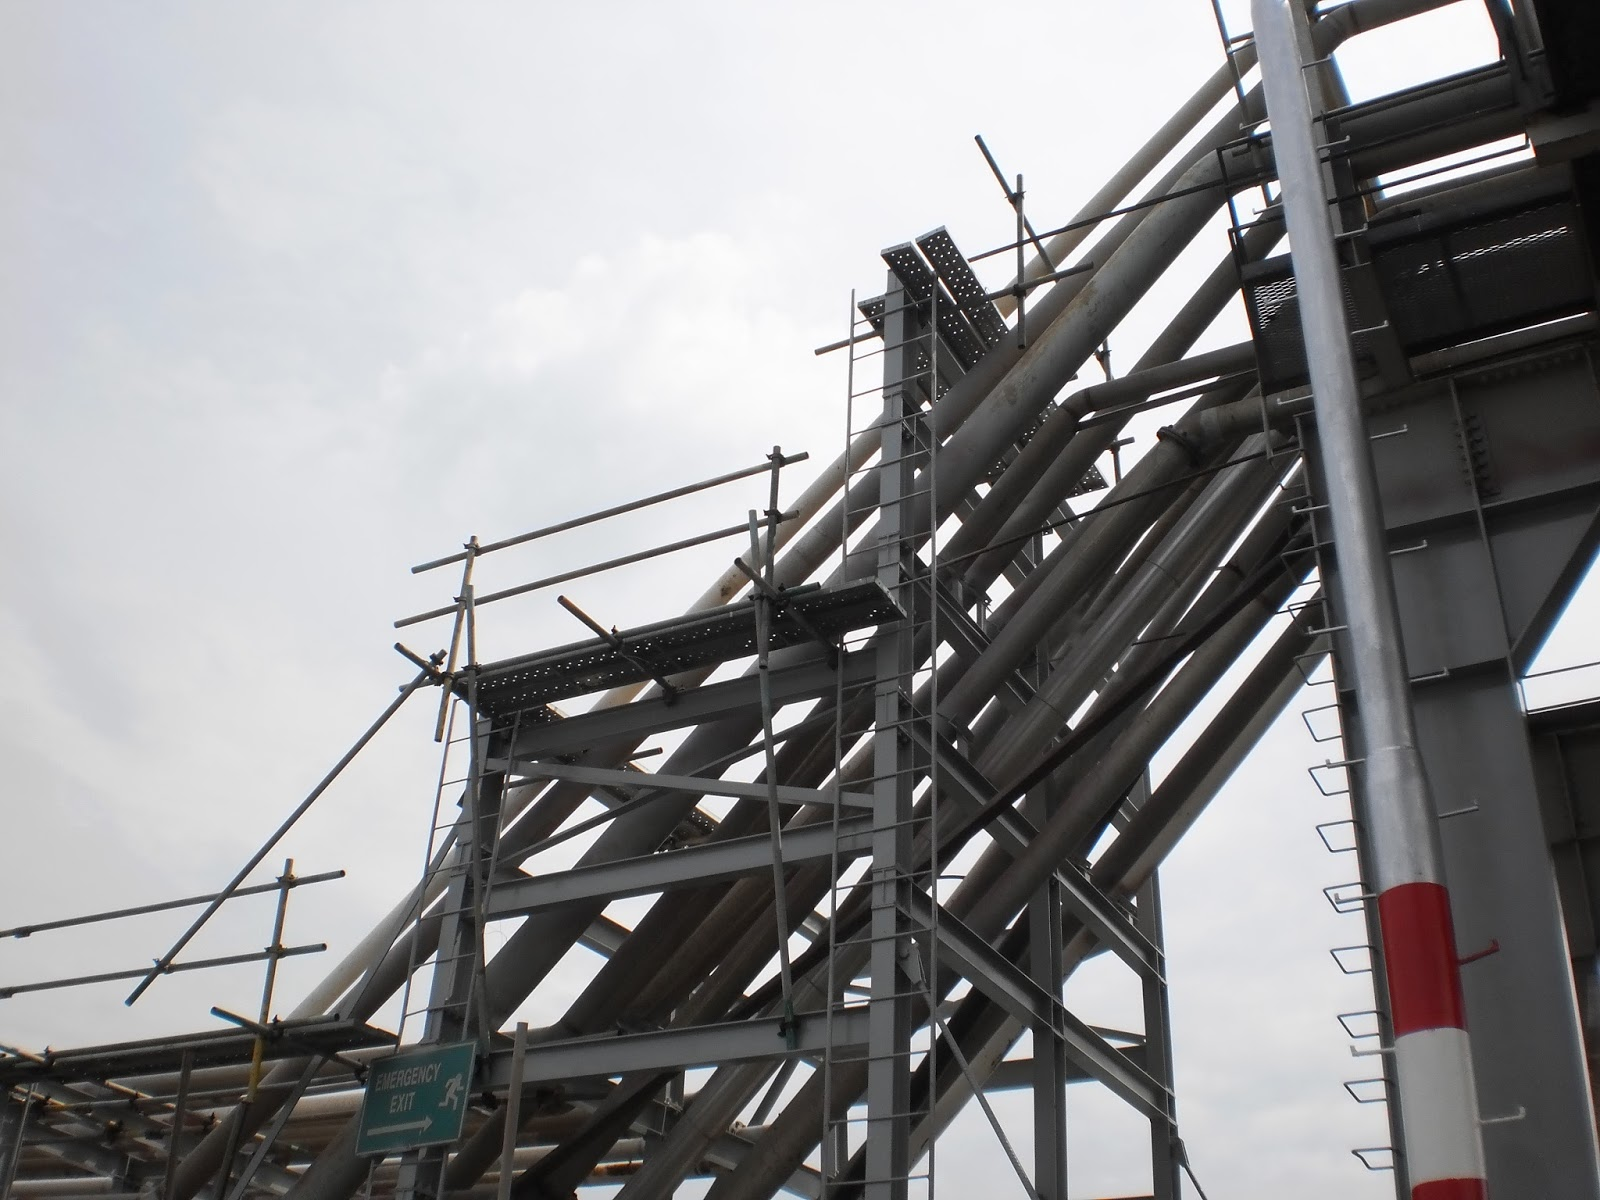 How to Use the Scaffolding Without Any Risks of Accidents